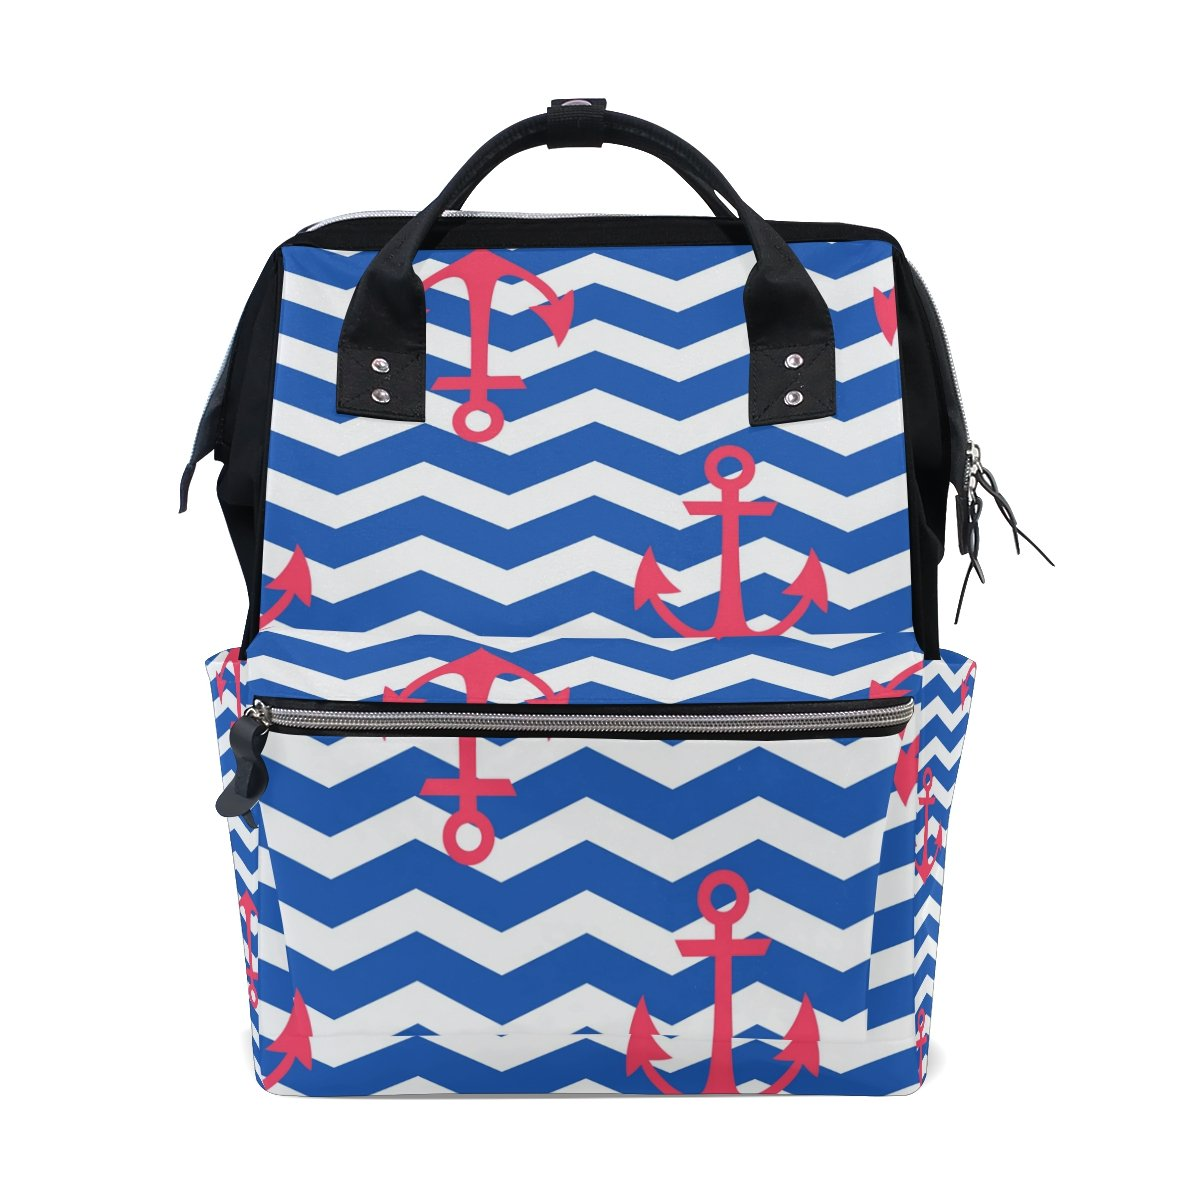 ALIREA Nautical Pattern With Anchors Diaper Bag Backpack, Large Capacity Muti-Function Travel Backpack